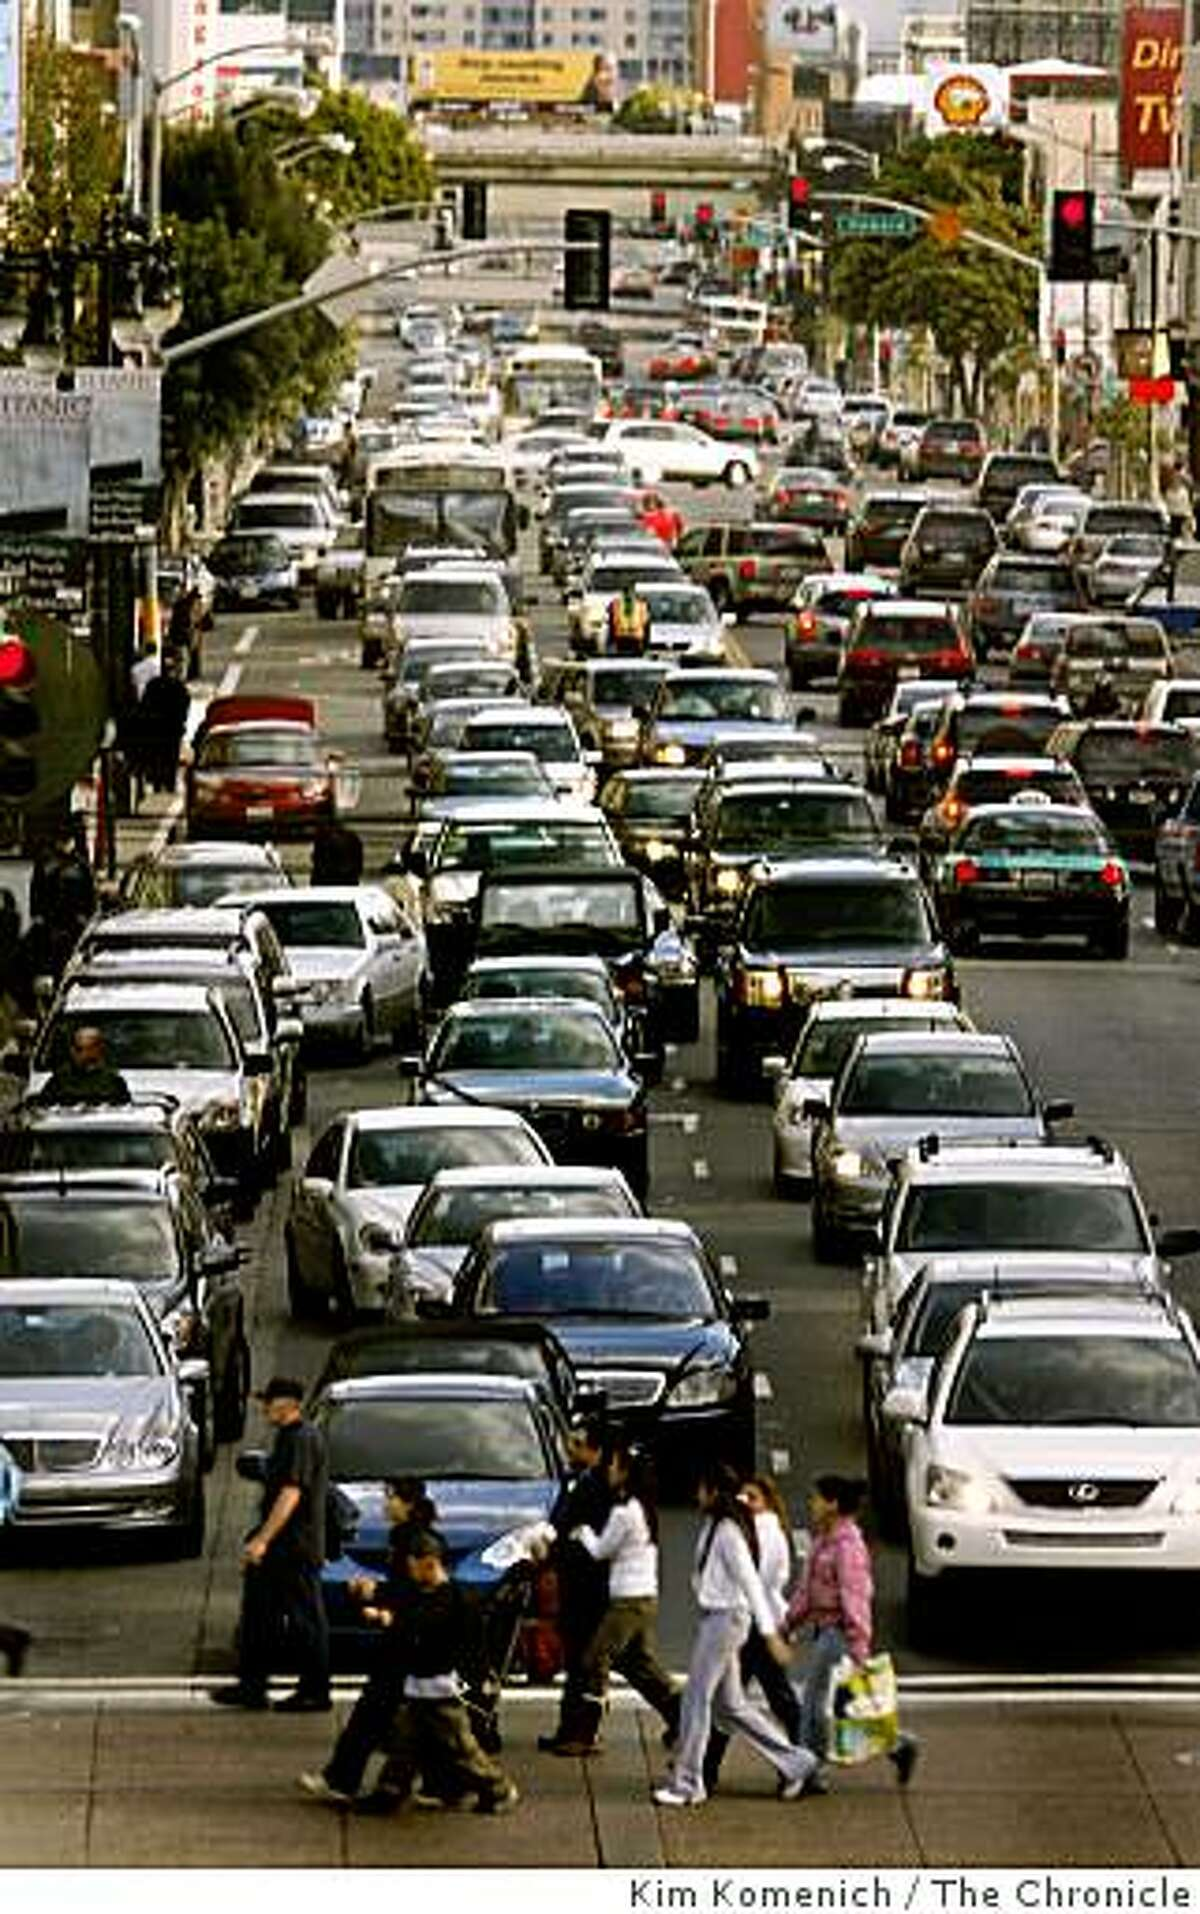 Traffic snarl in San Franciso used to illustrate Ed Perkins column on carbon footprint and travel choices for datebook column, Thursday, May 8, 2008. Photo by Kim Komenich.